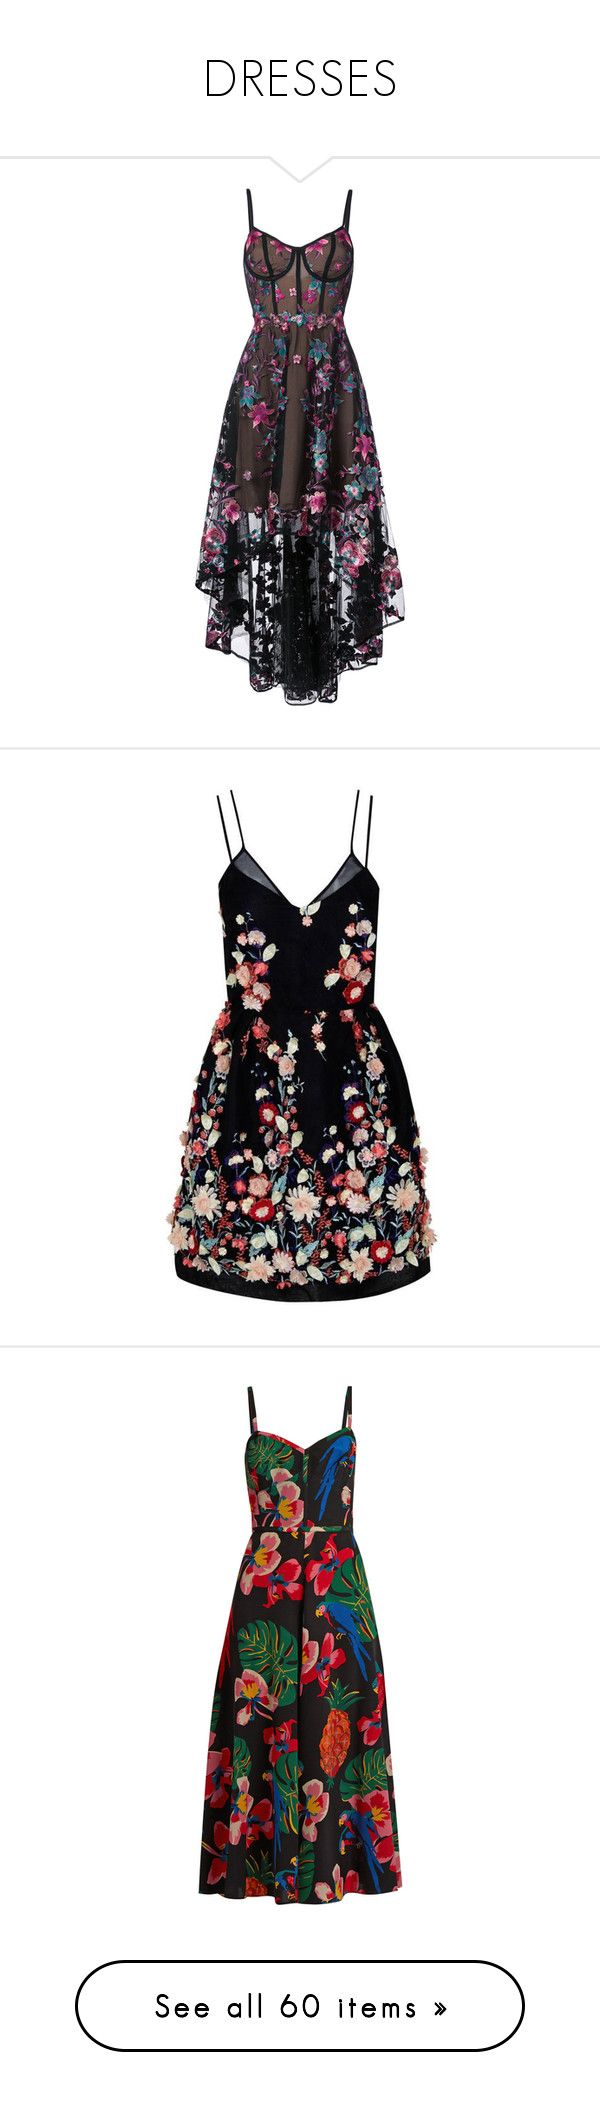 """DRESSES"" by seasweethome ❤ liked on Polyvore featuring dresses, gowns, vestidos, black, circle skirt, high low evening gowns, high low evening dresses, embroidered dress, floral embroidered gown and short dresses"